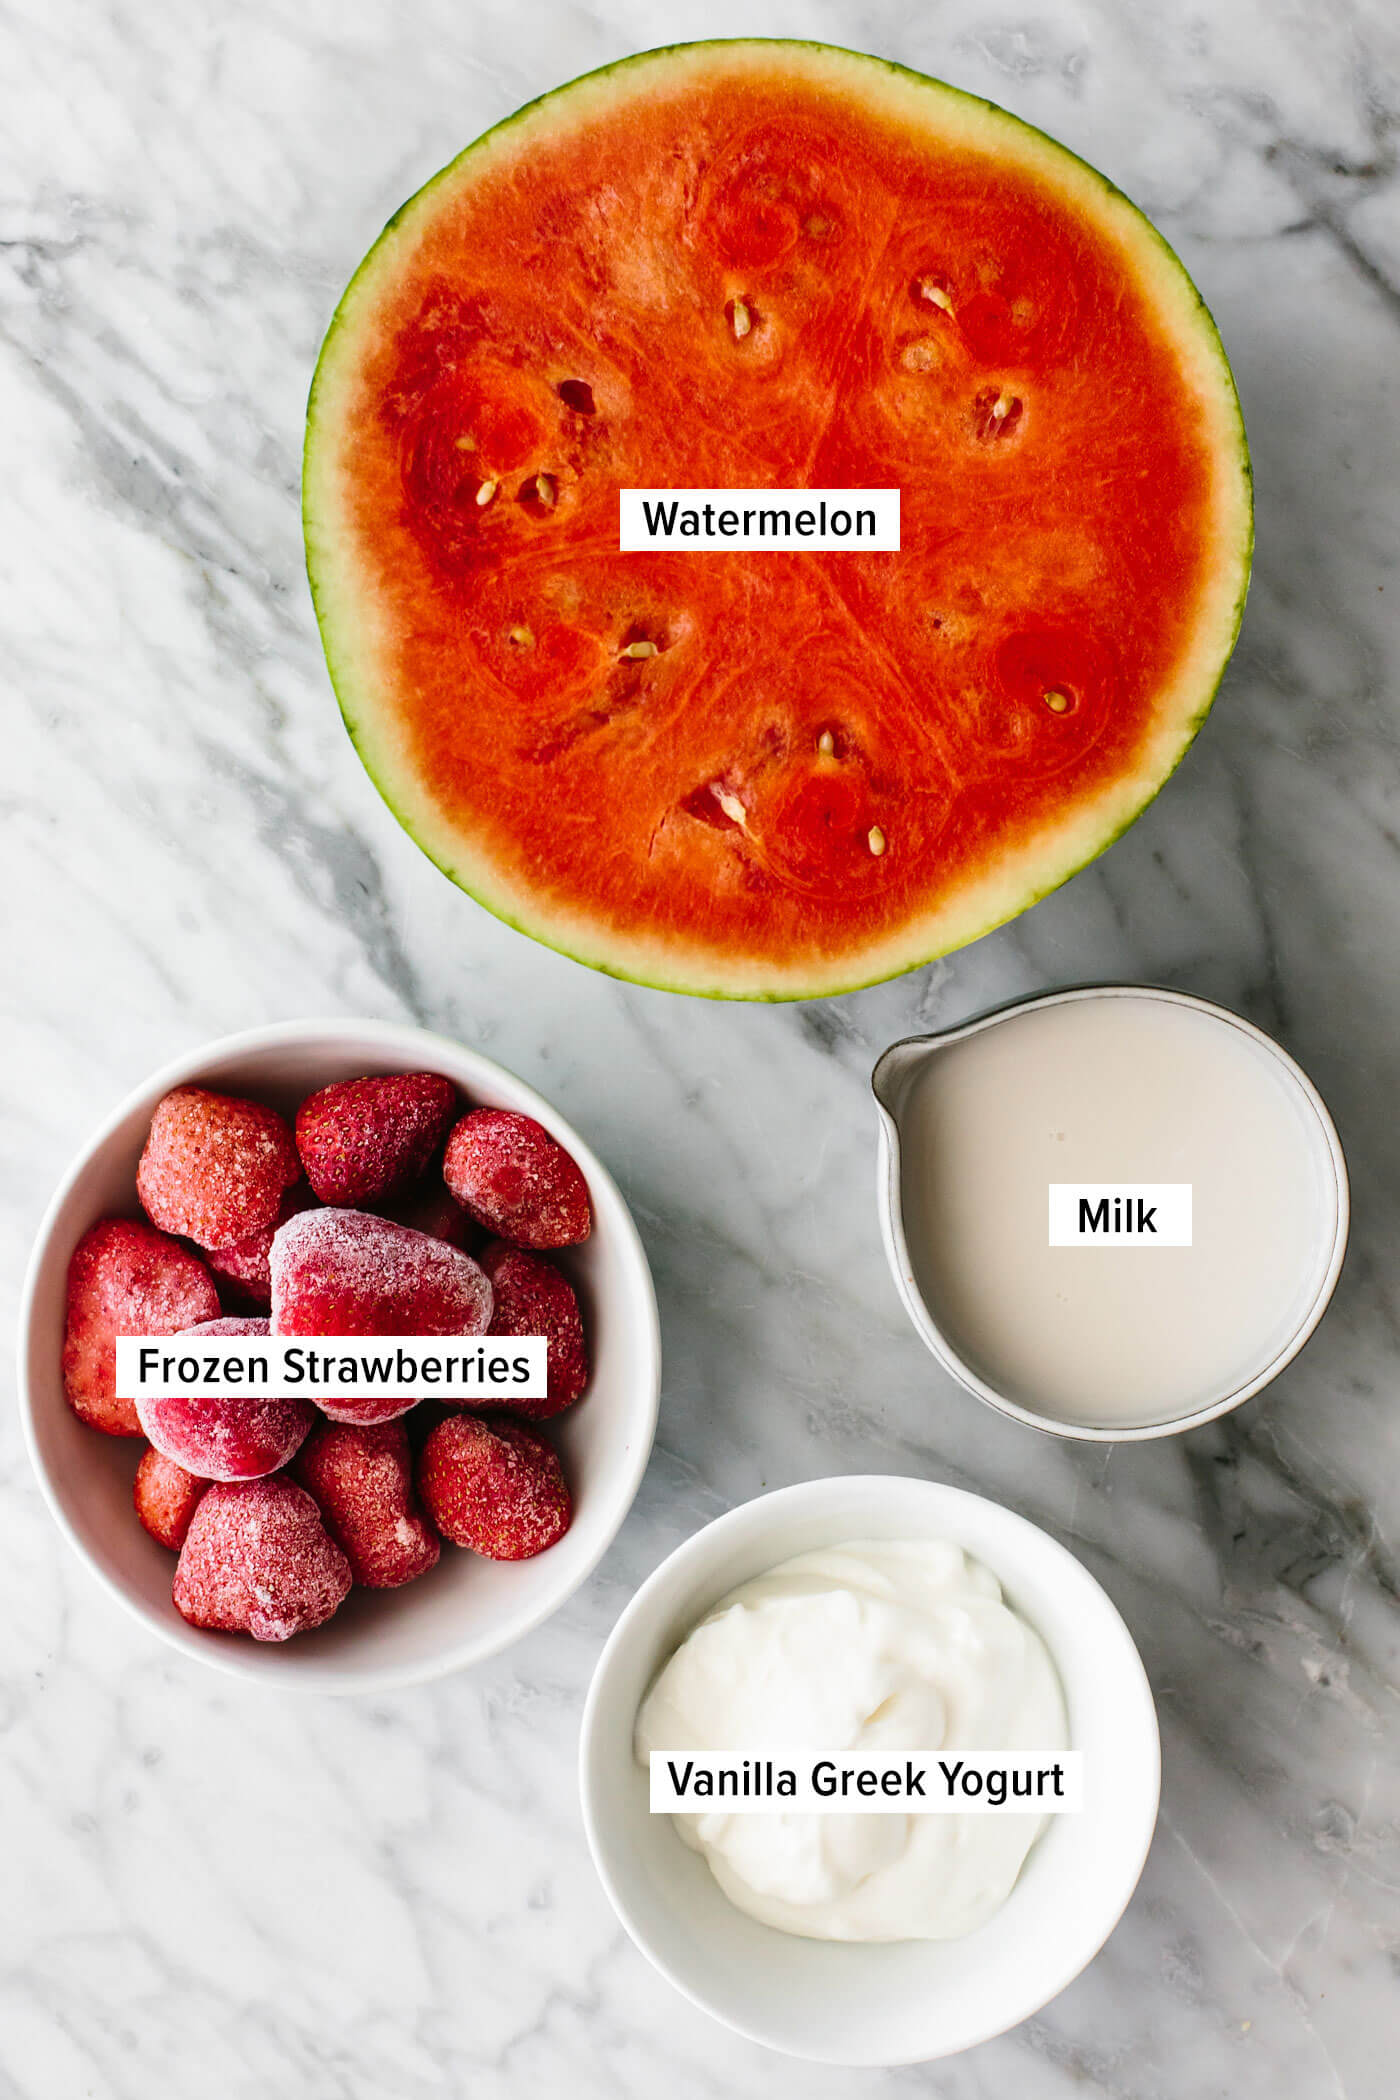 Ingredients for watermelon smoothie on a table.